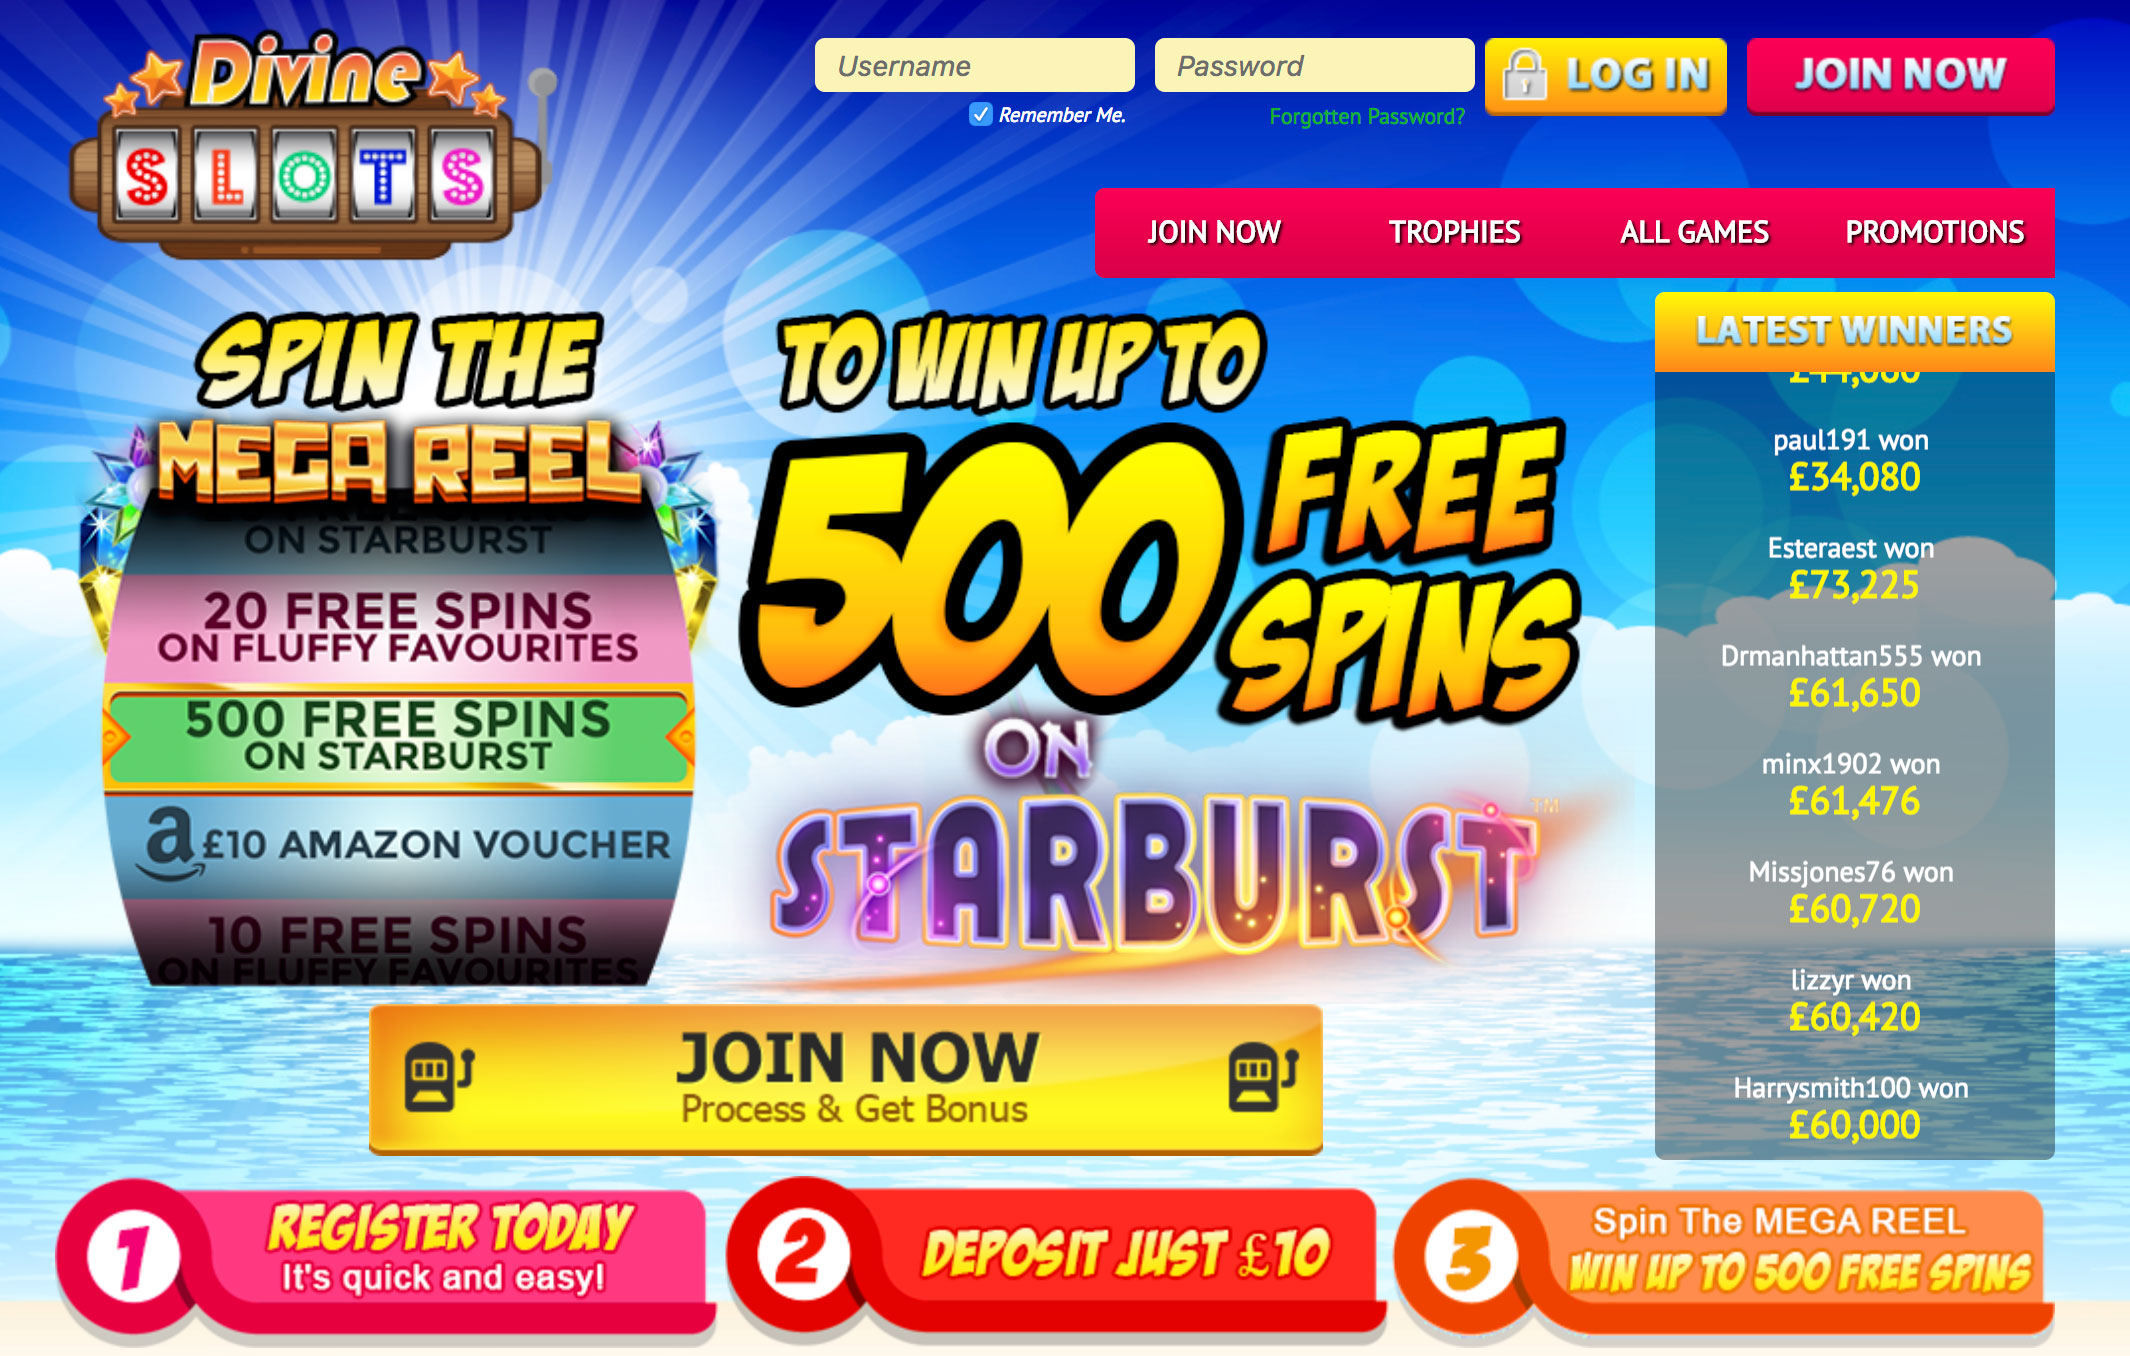 Latest Bingo News - Advantages of playing online slot machines at New Slots Site UK Divine Slots